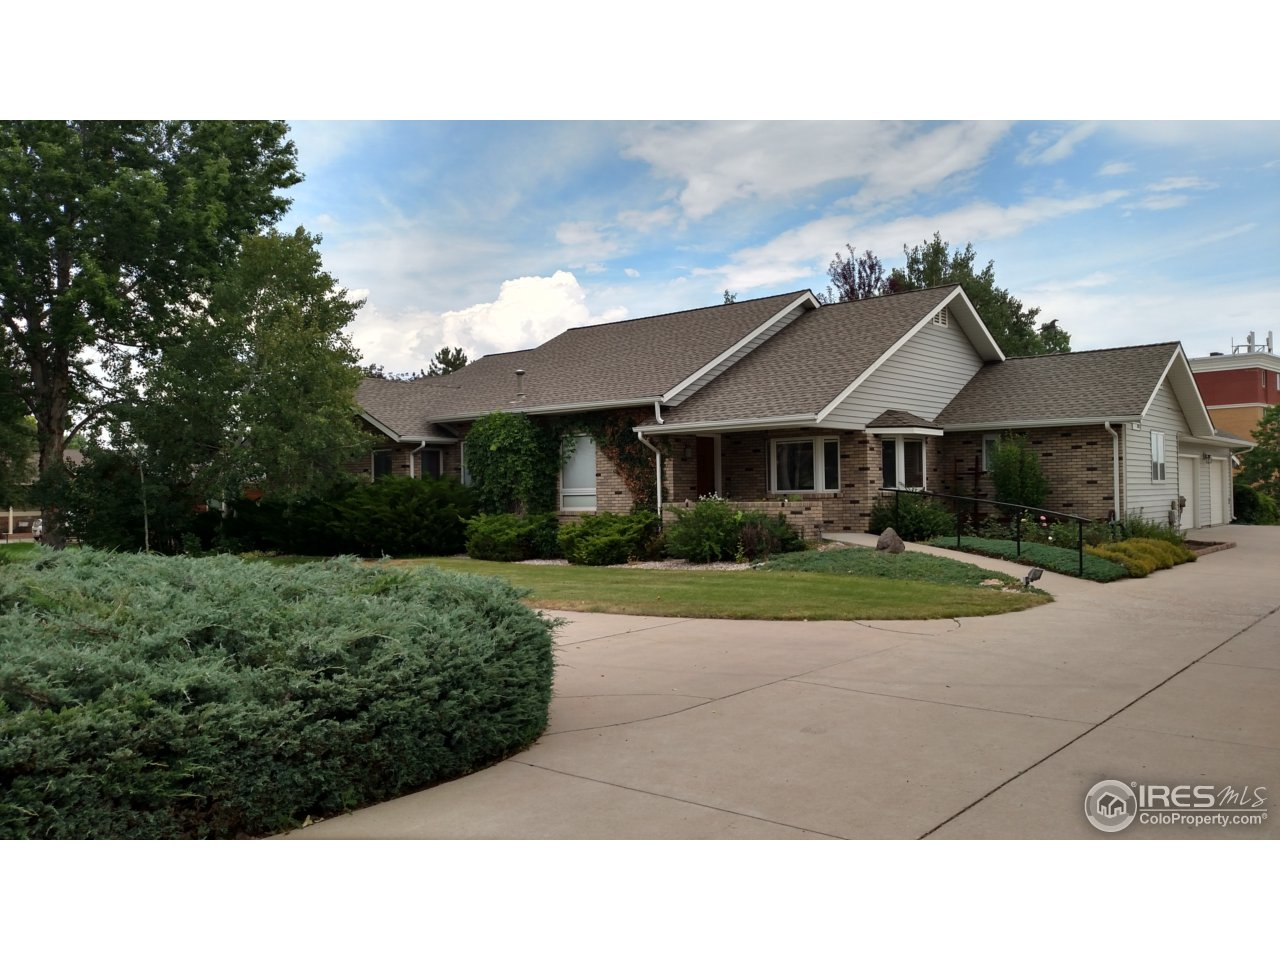 6512 Fossil Crest Dr, Fort Collins, CO 80525